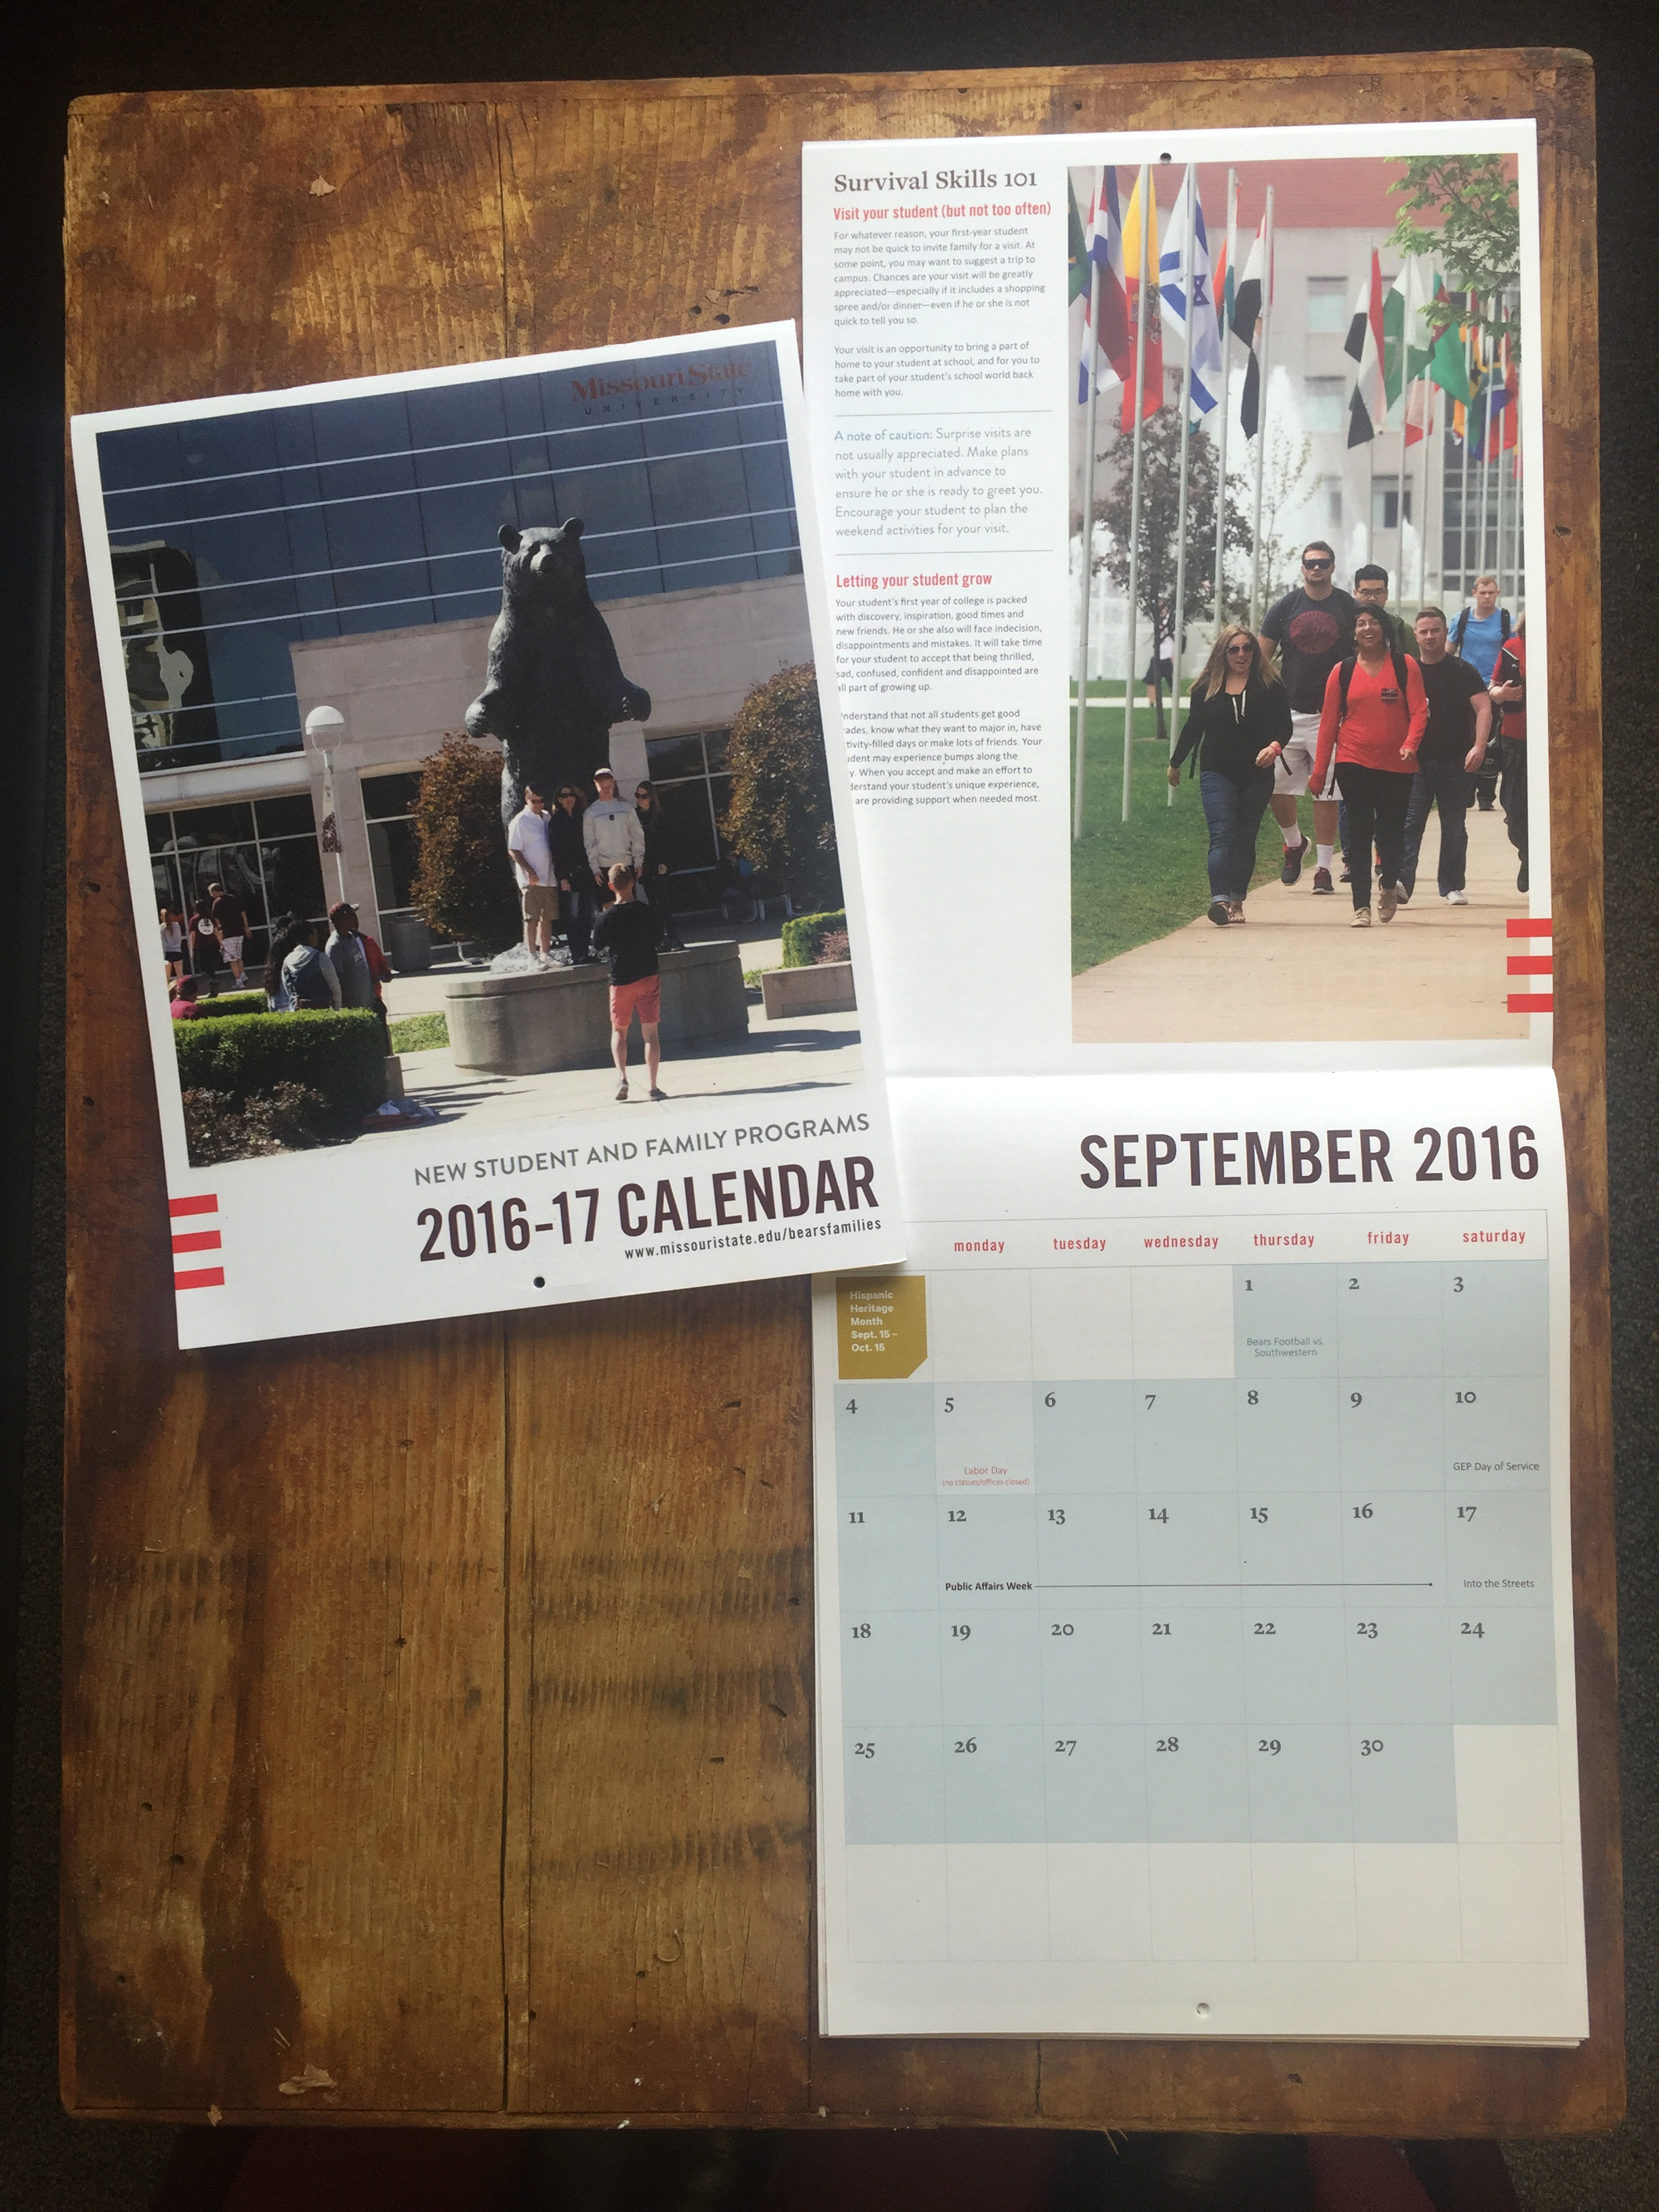 Calendar highlights candid moments and documentary-style images